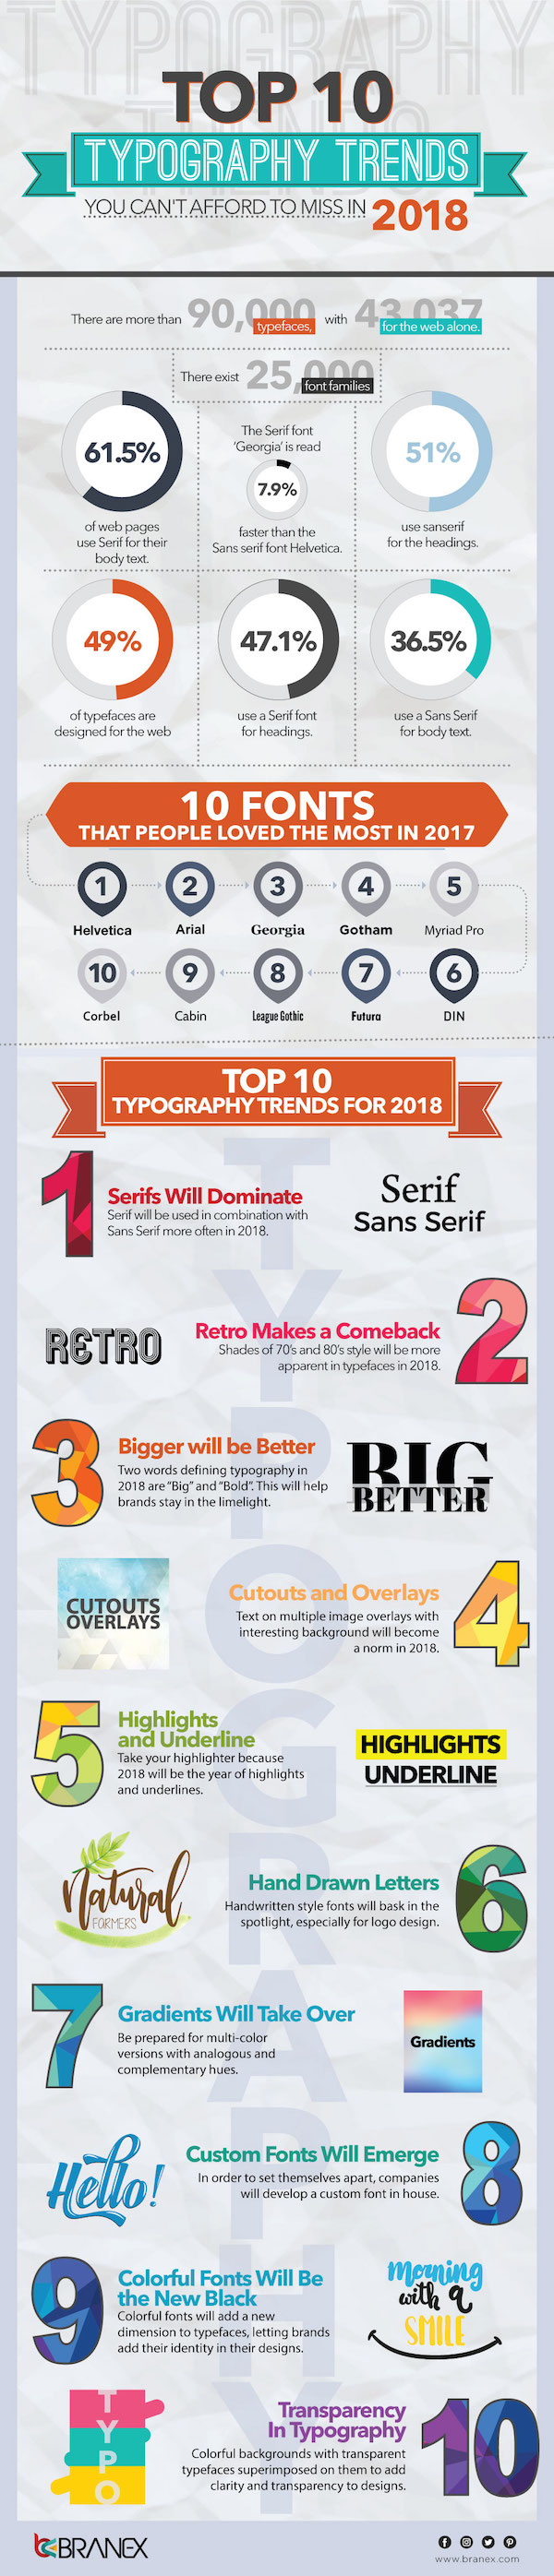 Infographic: Top 10 Typographic Trends Not To Be Missed In 2018